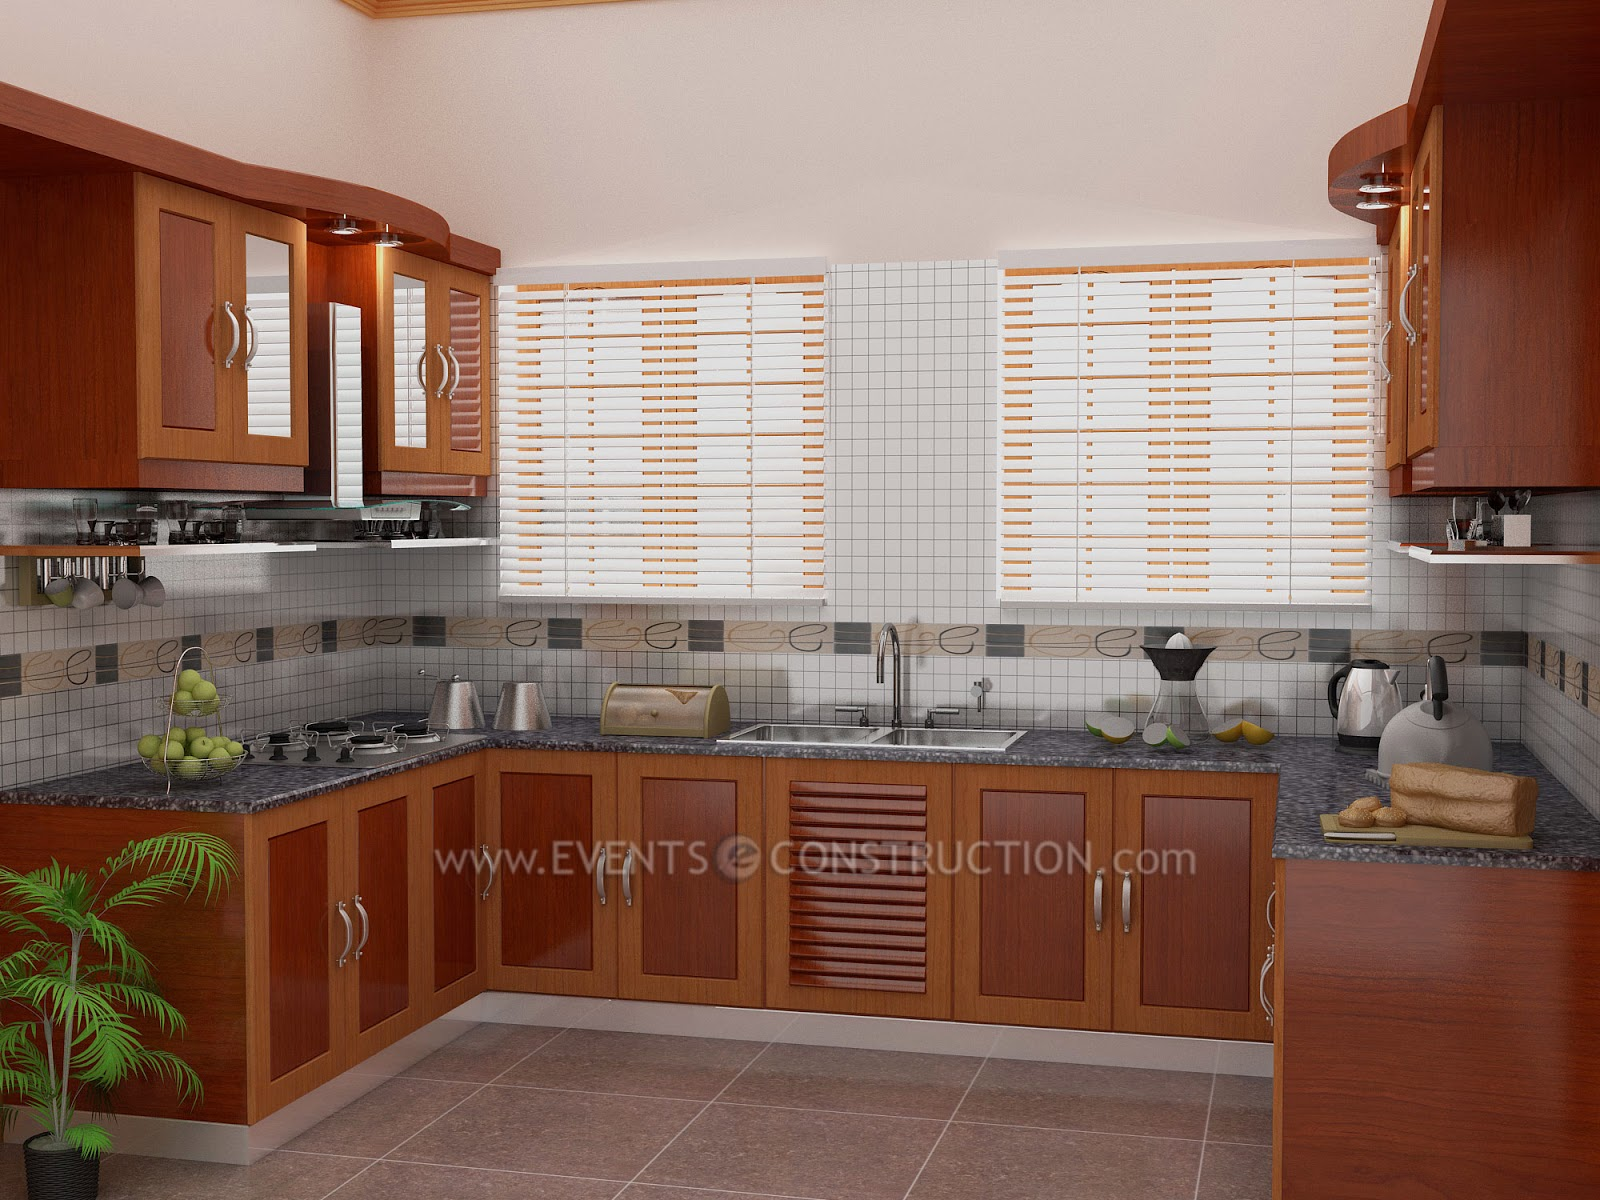 Evens construction pvt ltd simple kerala kitchen design for Kitchen interior design styles